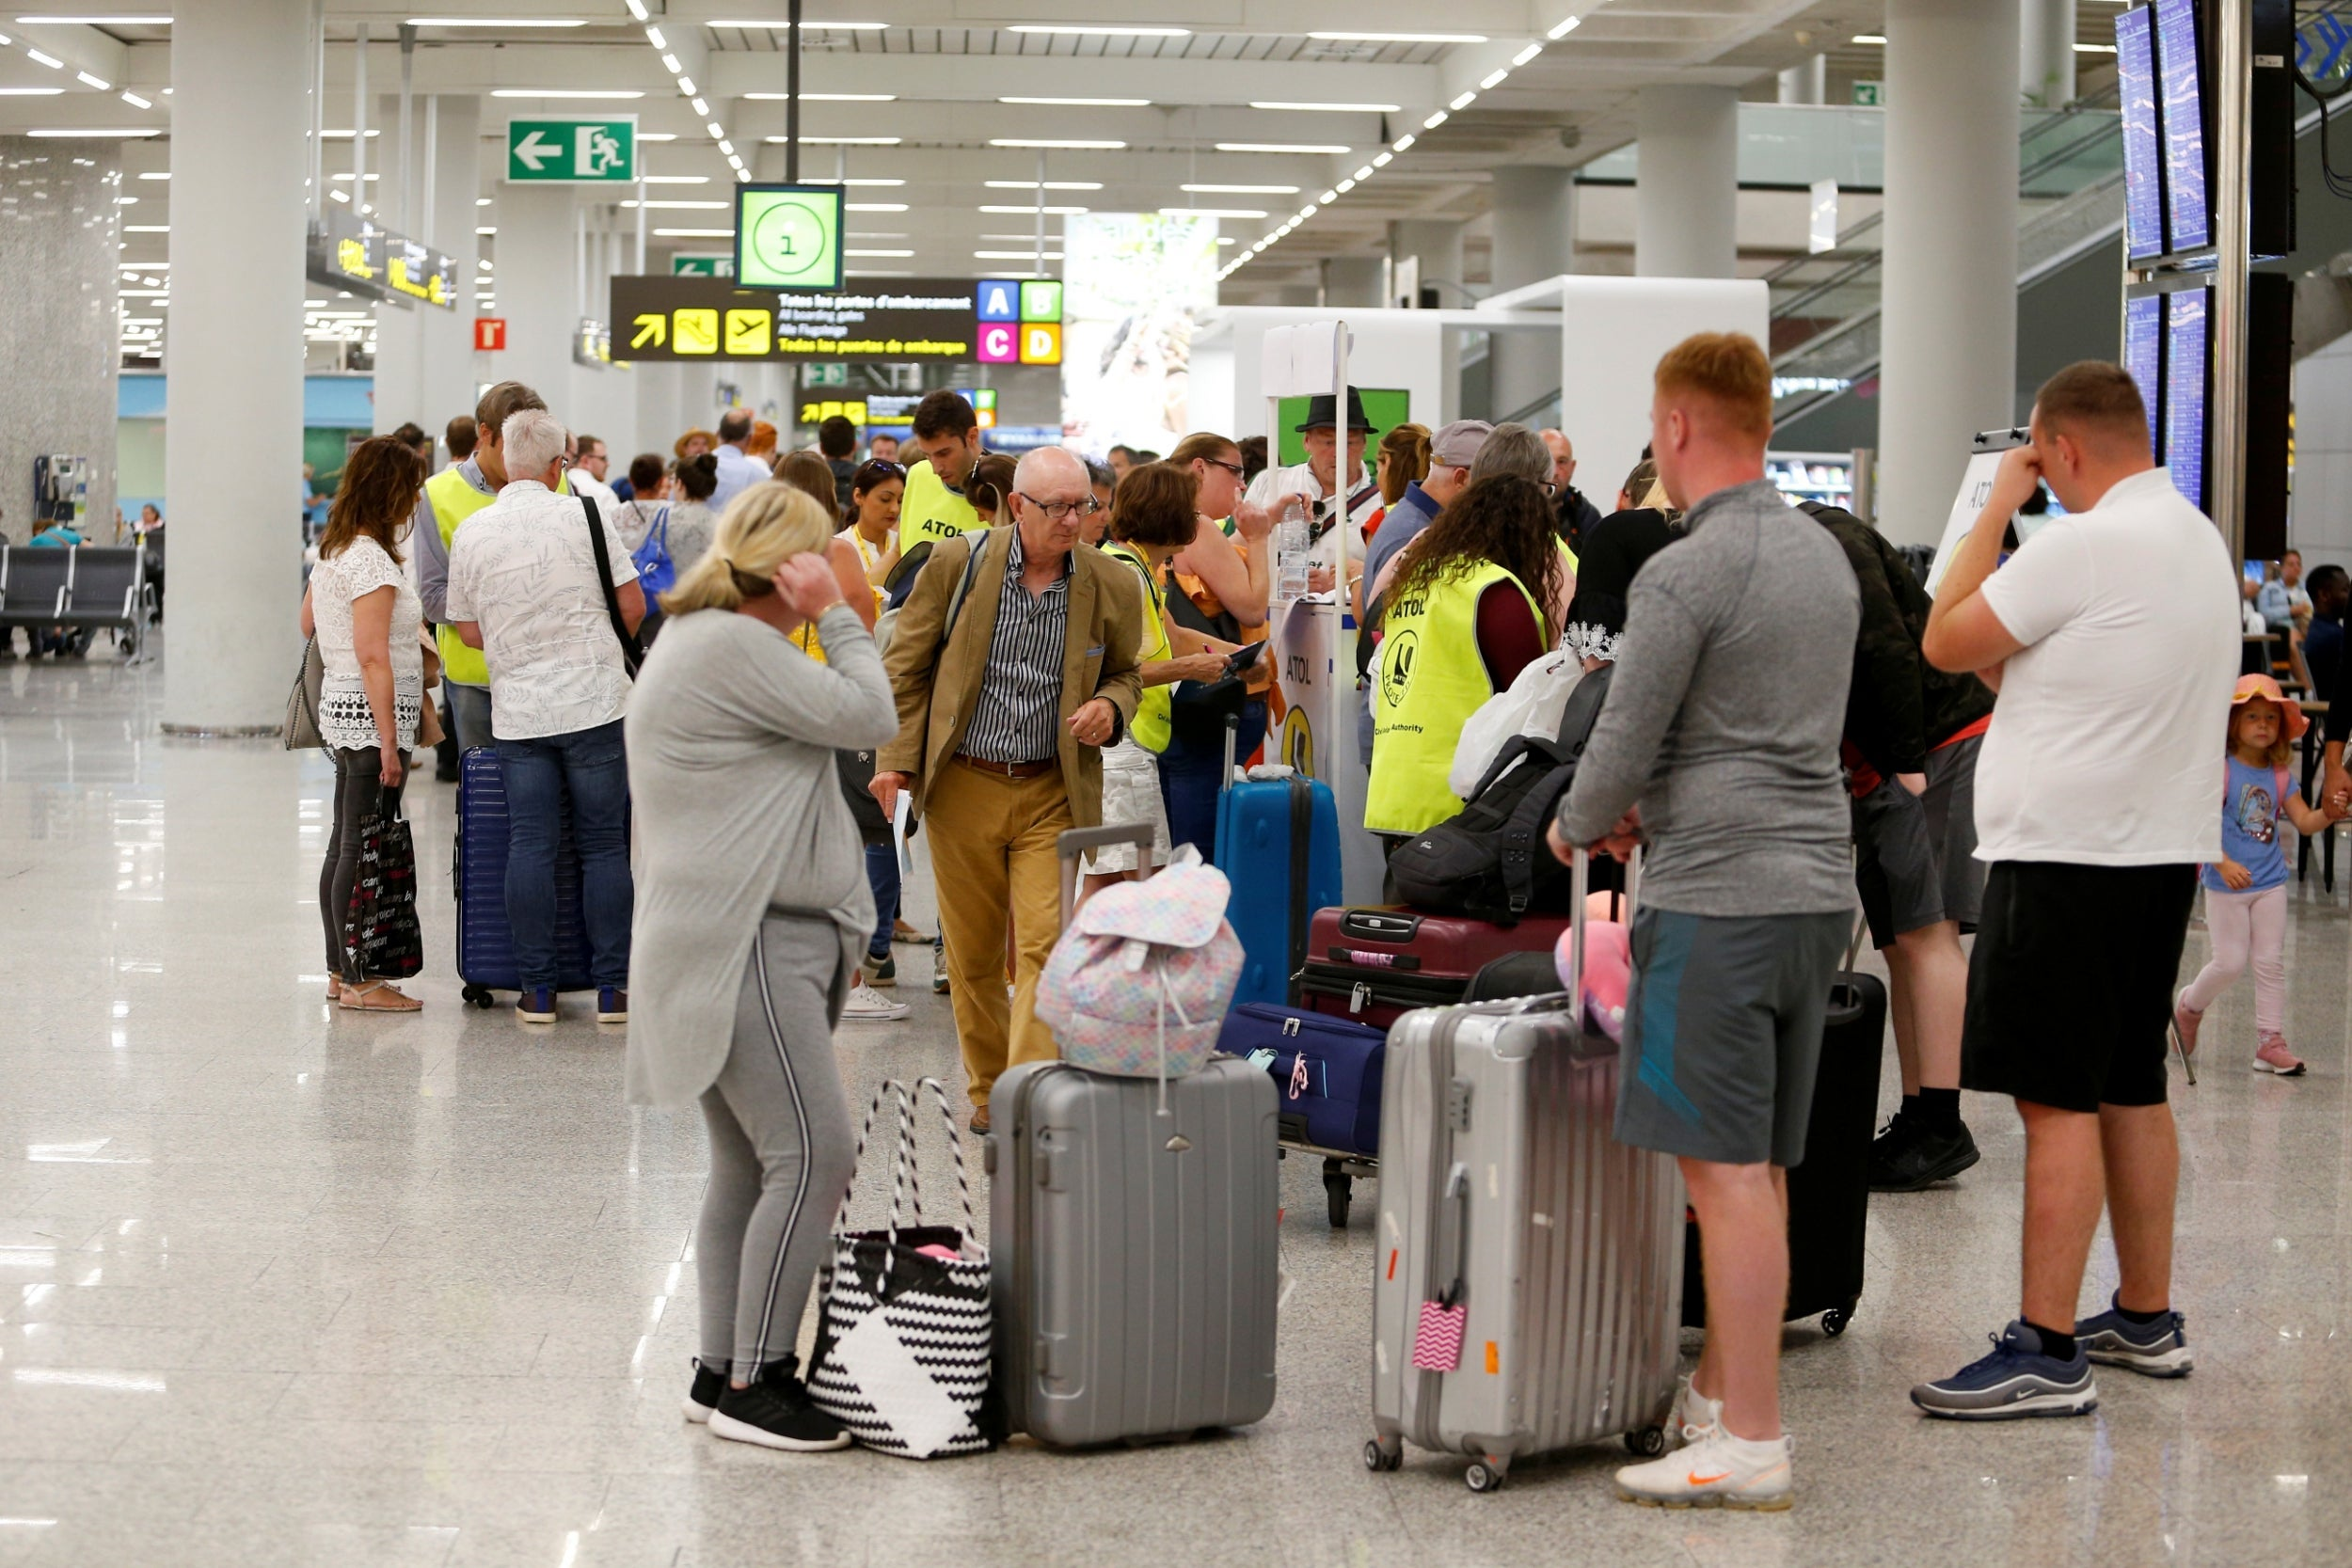 Thomas Cook news - live: 150,000 British holidaymakers wait for repatriation after Boris Johnson refuses to bail collapsed firm out